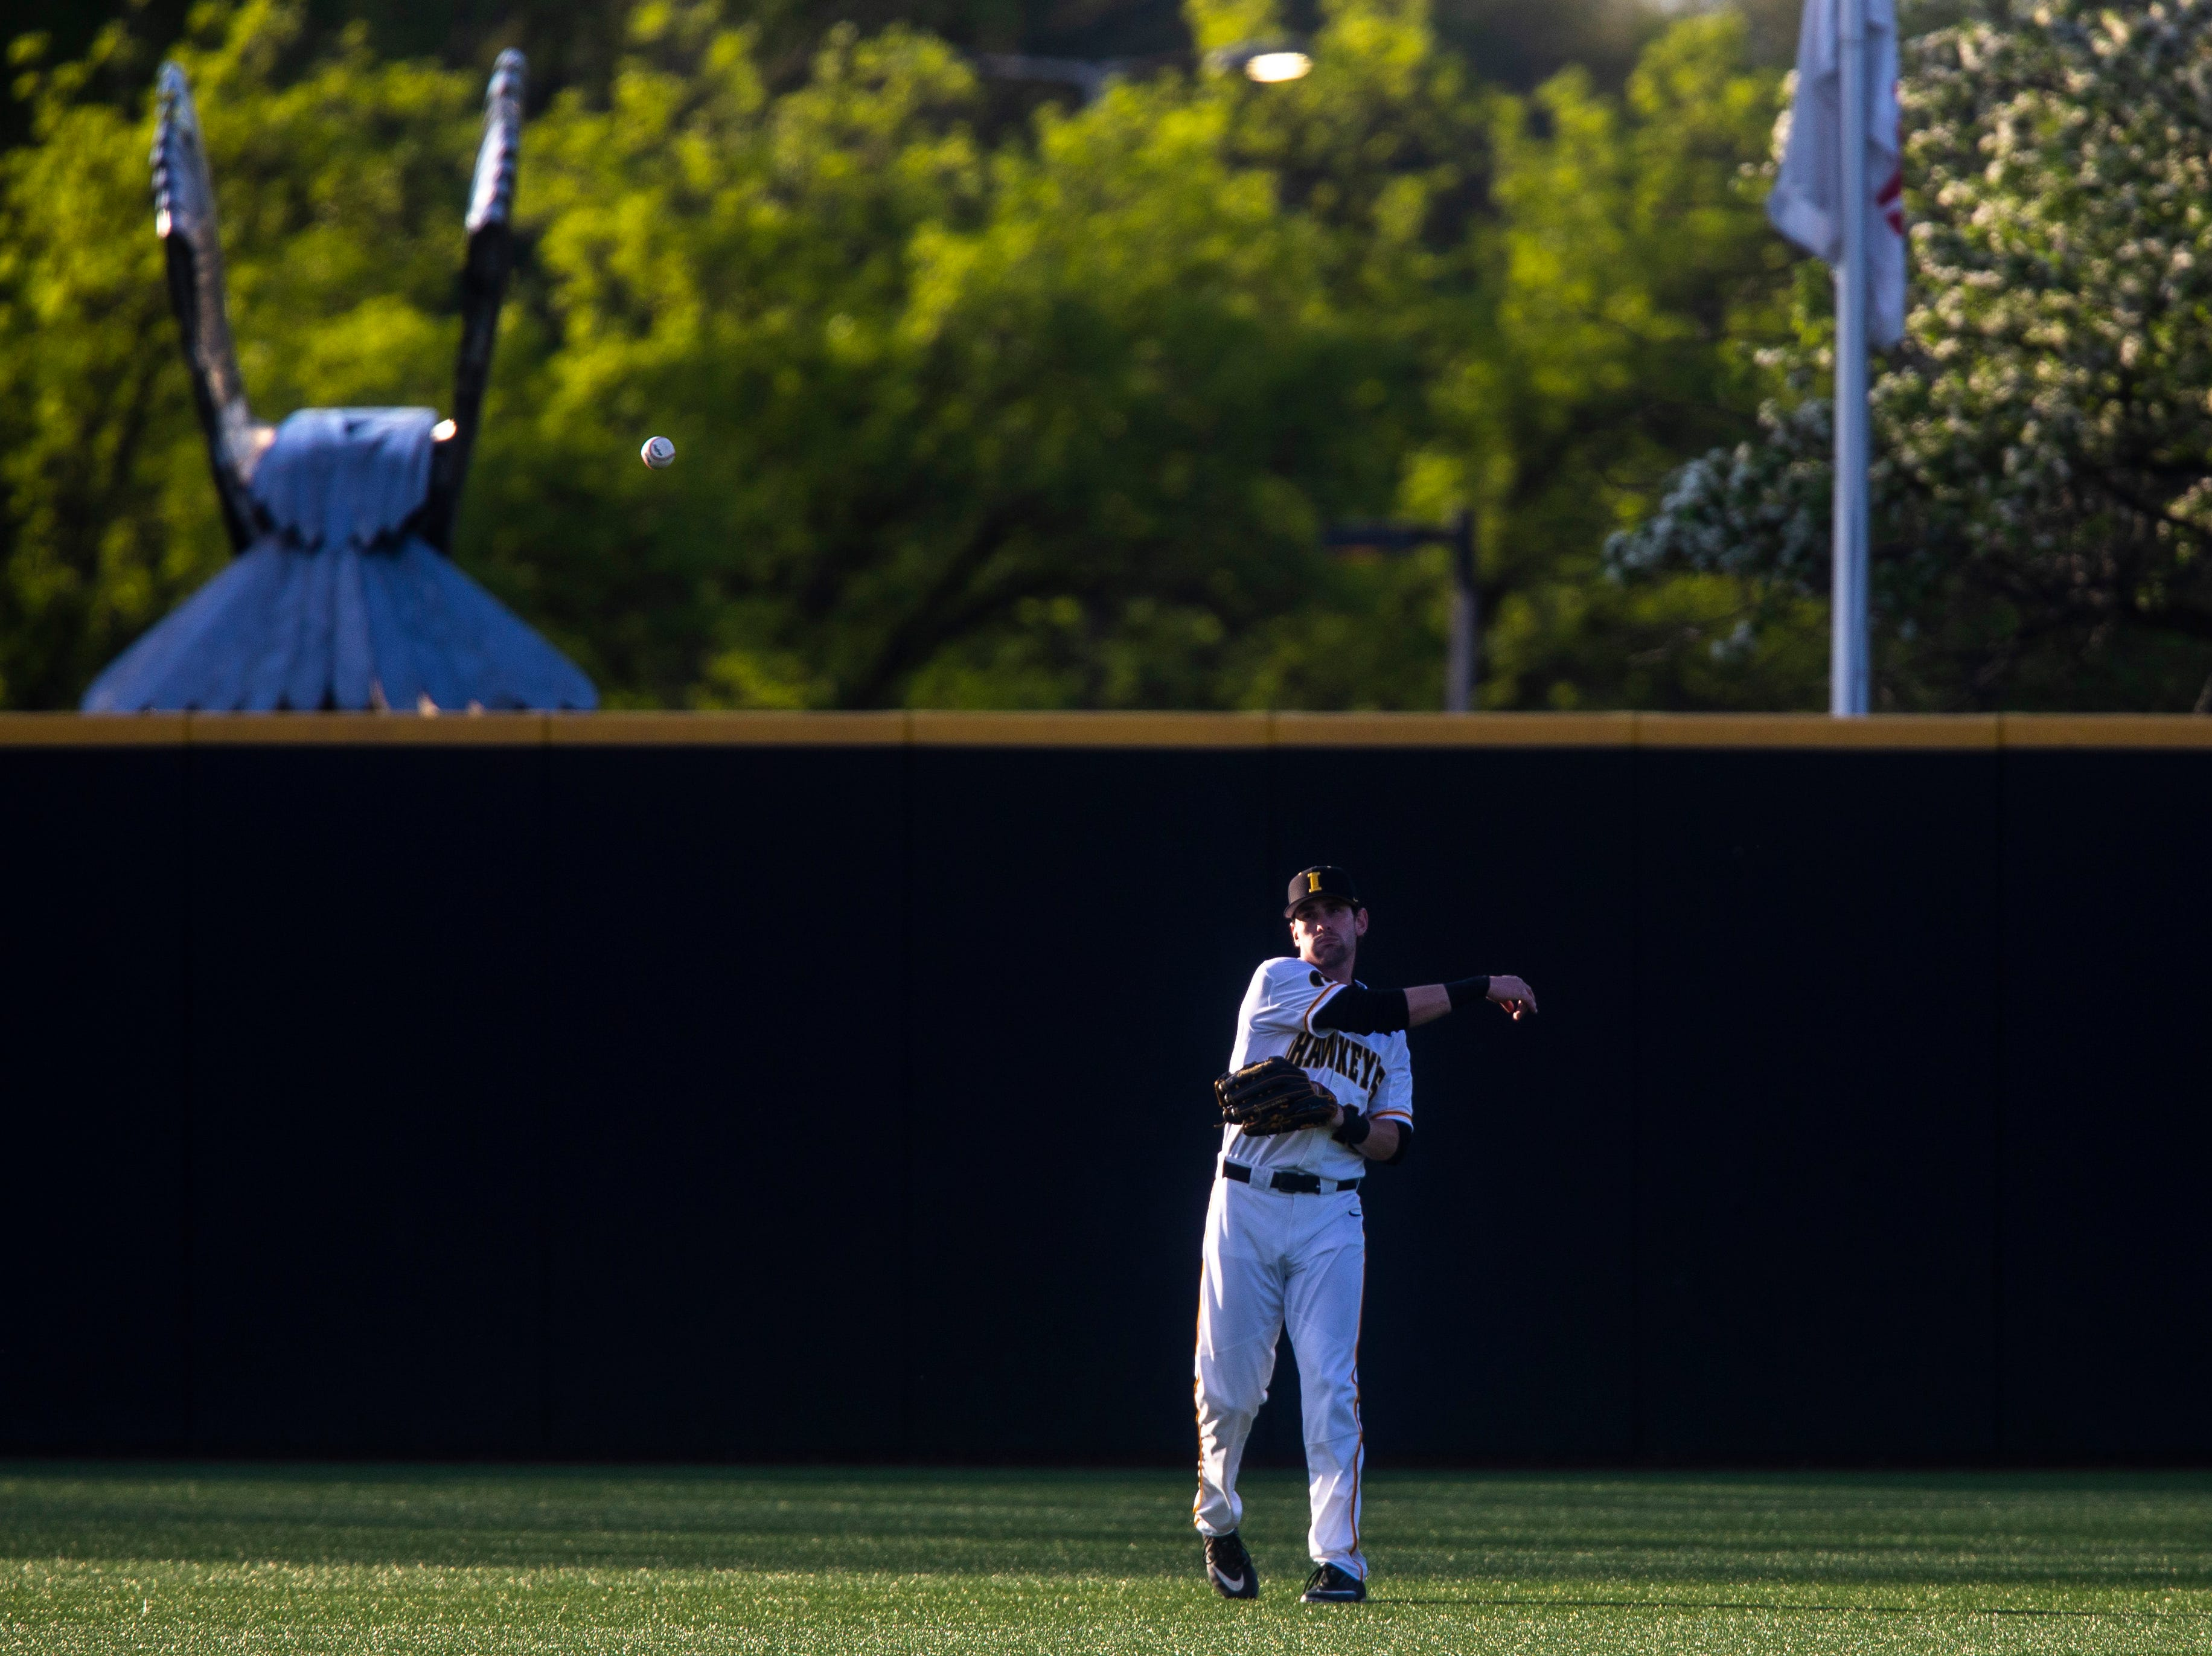 Iowa's Chris Whelan (28) throws a ball in during a NCAA Big Ten Conference baseball game, Friday, May 10, 2019, at Duane Banks Field on the University of Iowa campus in Iowa City, Iowa.